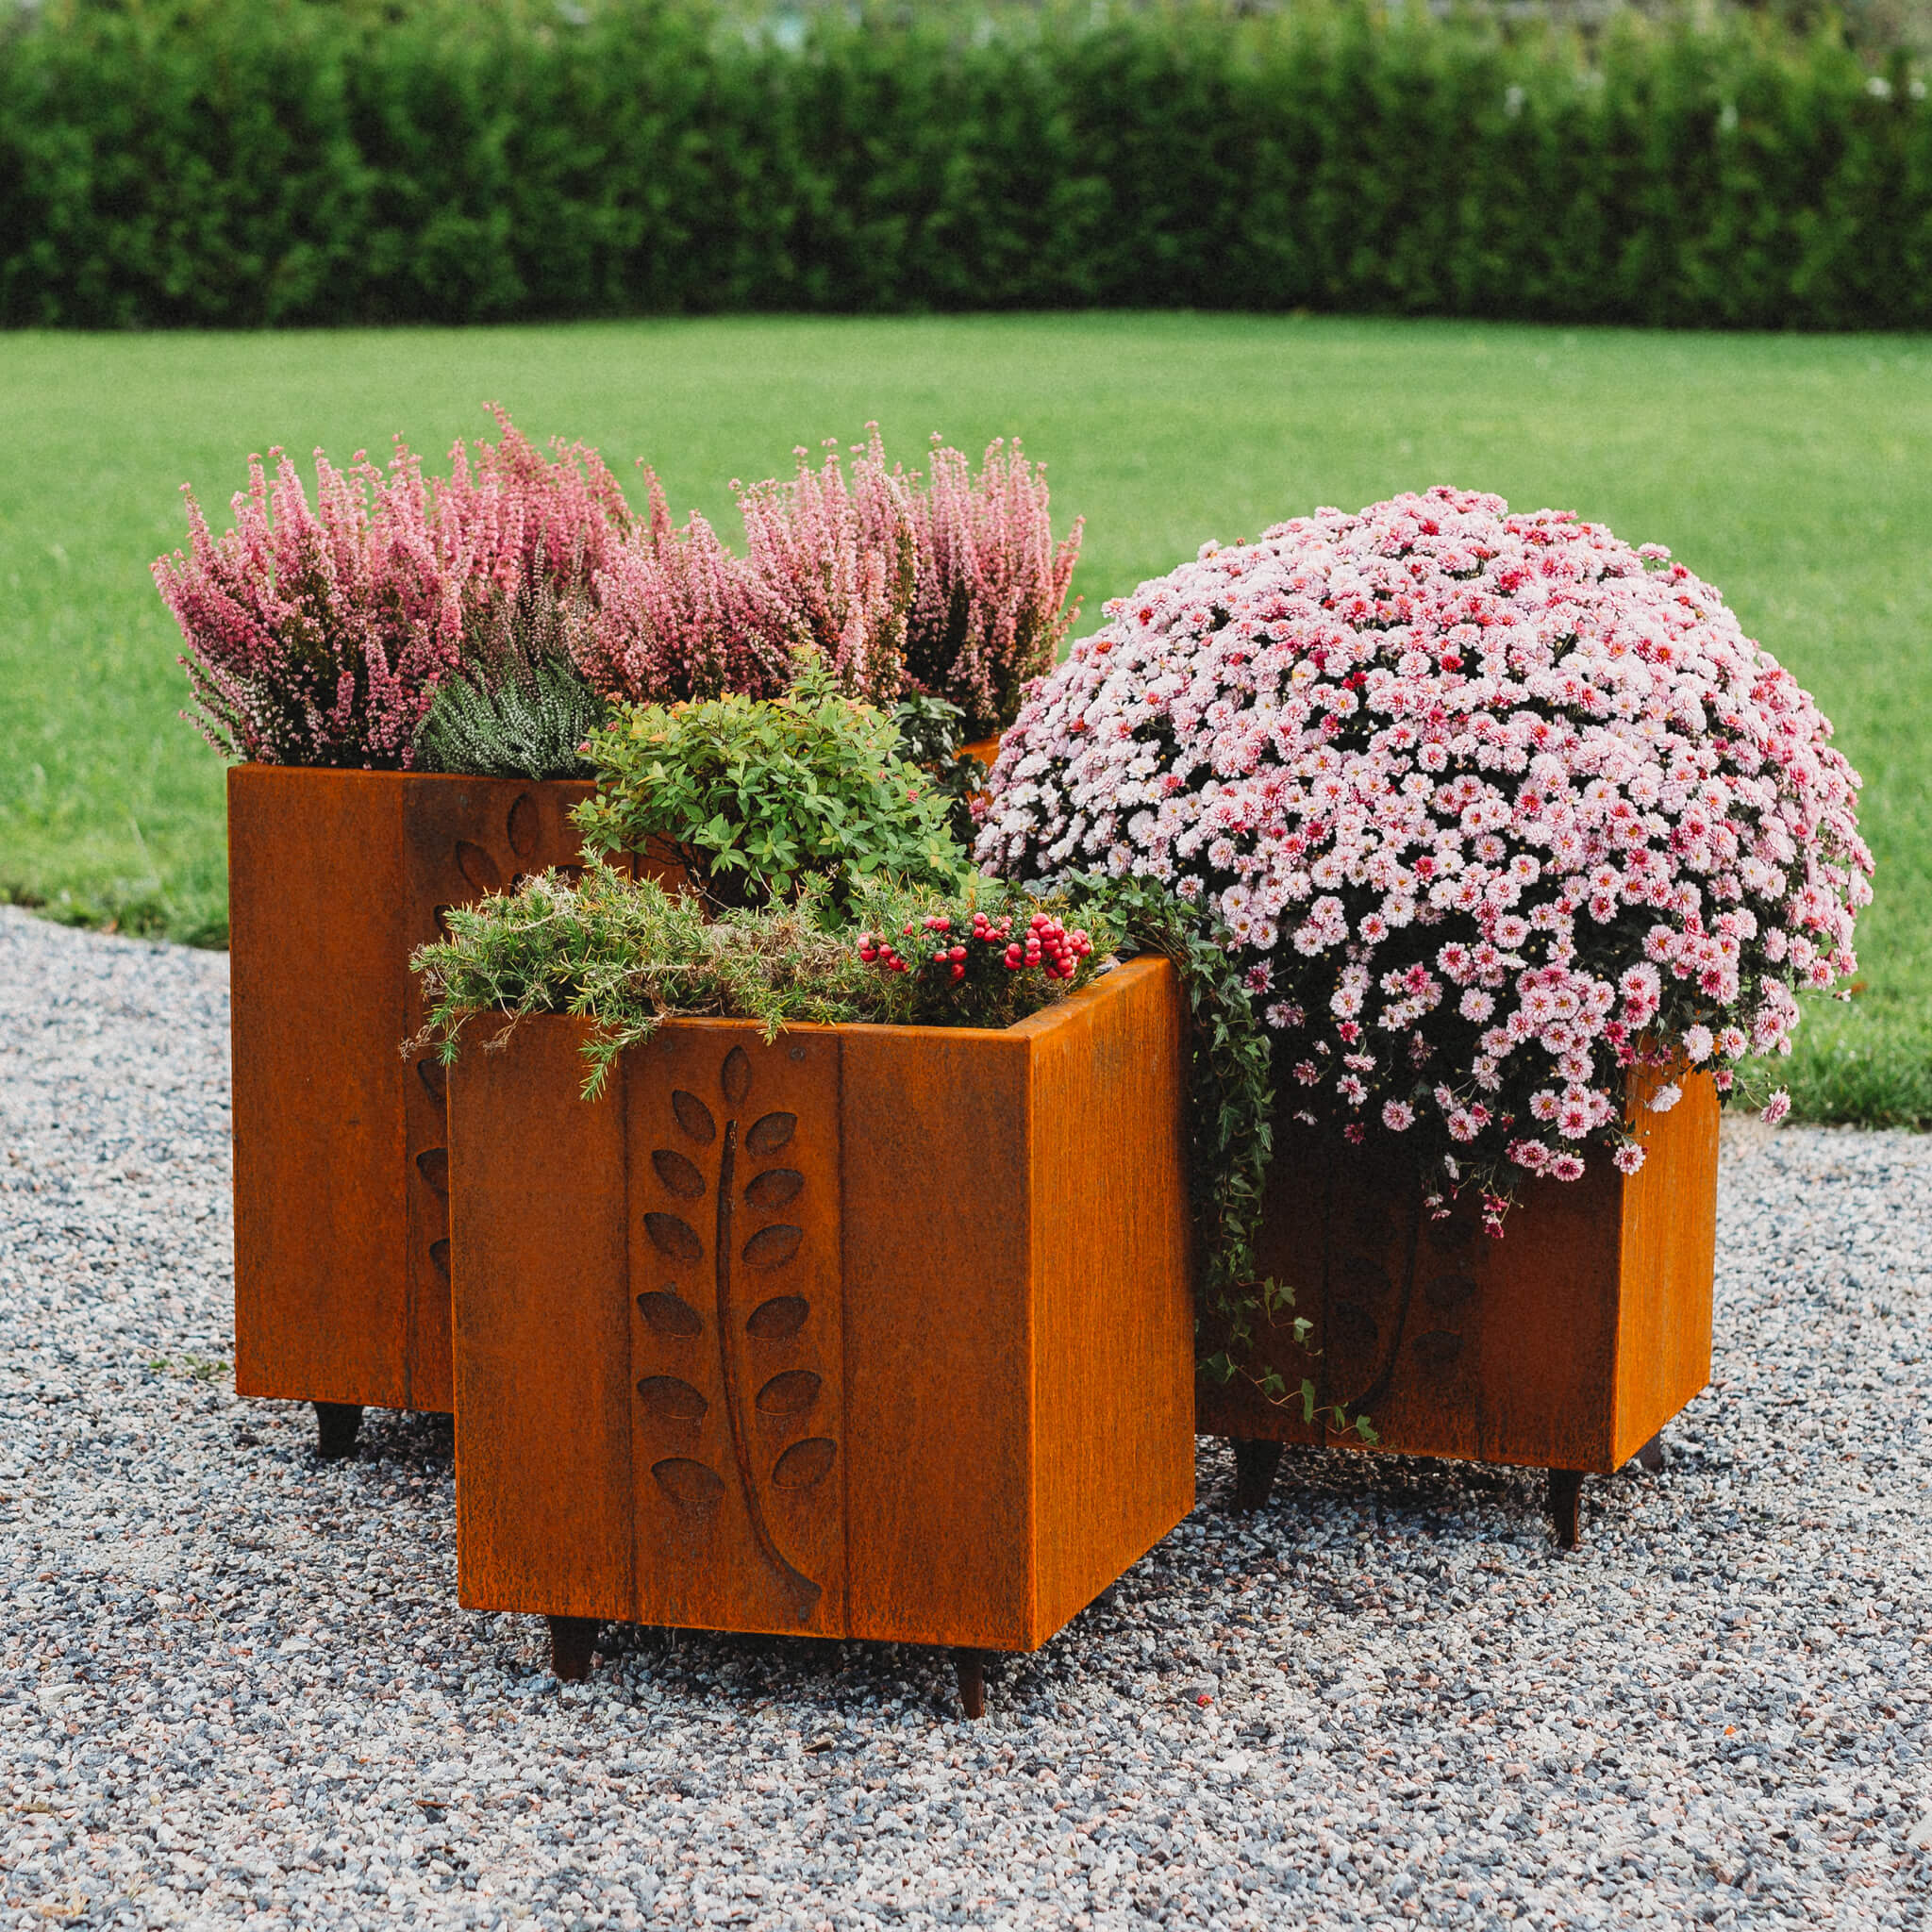 GrillSymbol Cor-Ten Steel Flower Pot Set Fat Ballerina